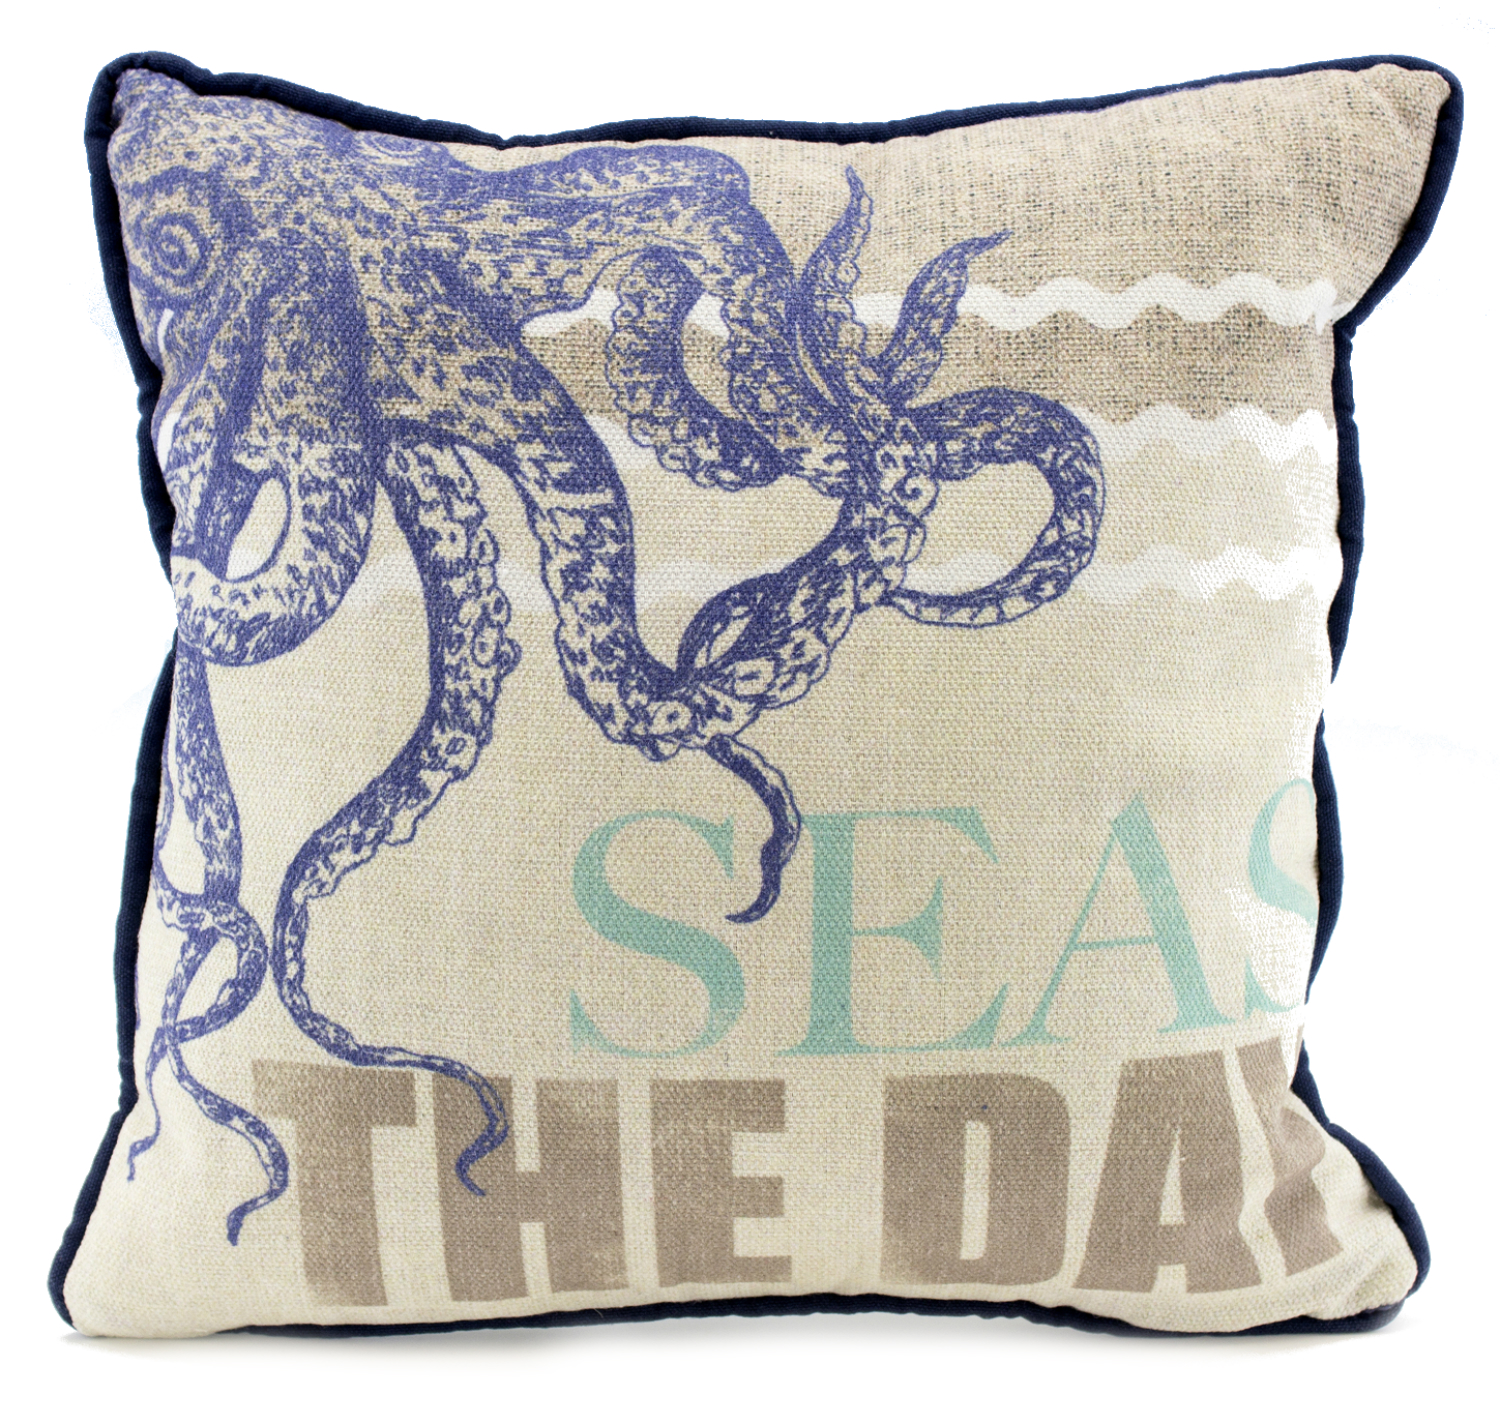 Nautical Seas The Day Octopus Tentacles Decorative Accent Pillow 12 Inch